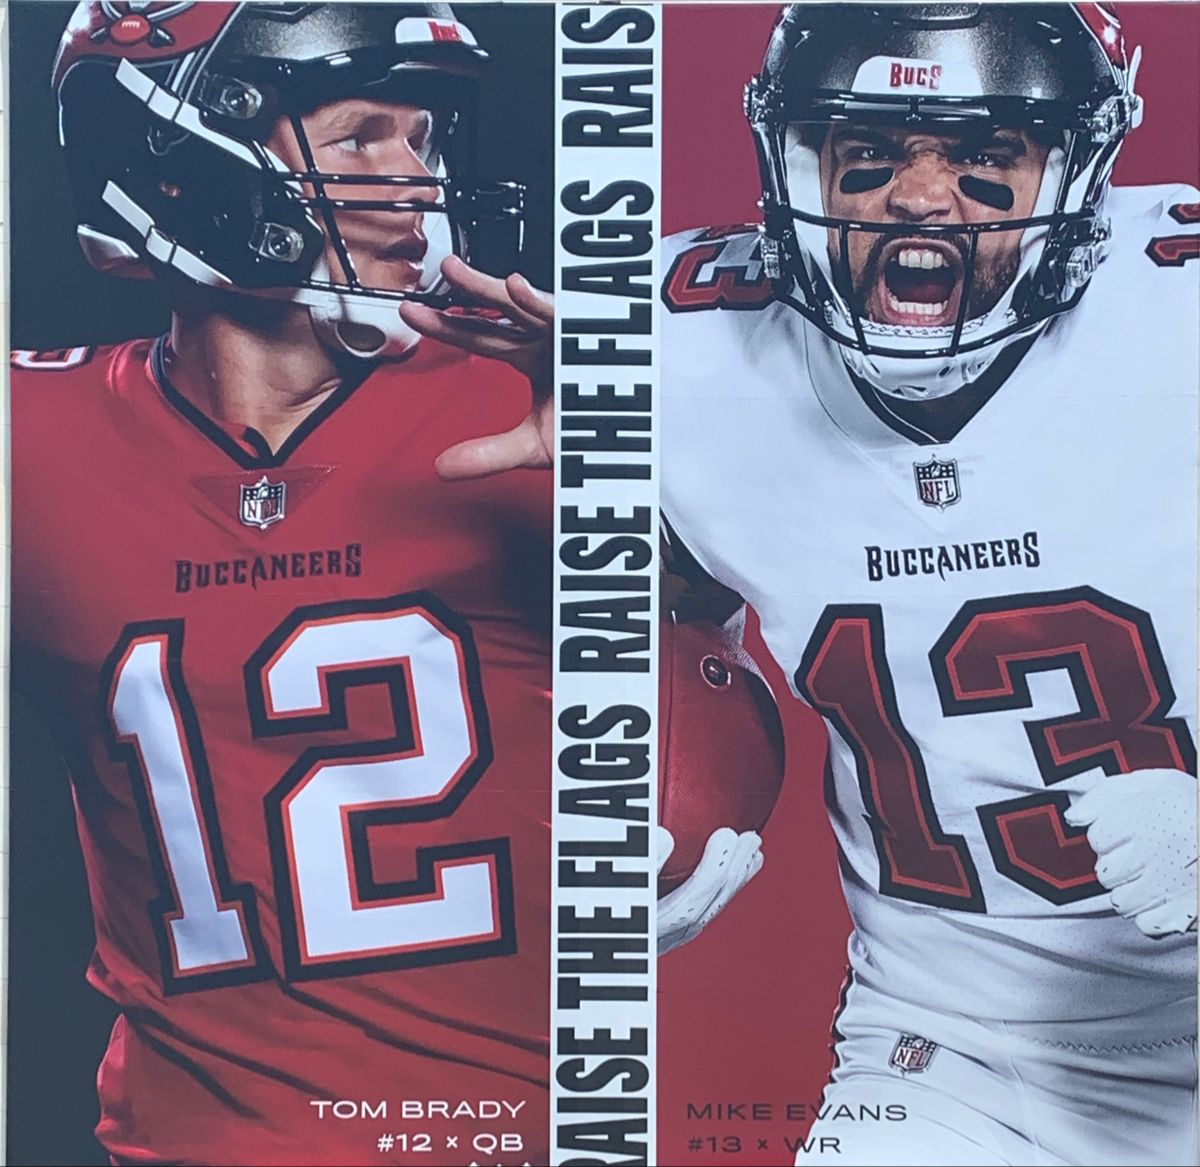 Bucs Player Banners In 2020 Mike Evans Football Helmets Sports Photos